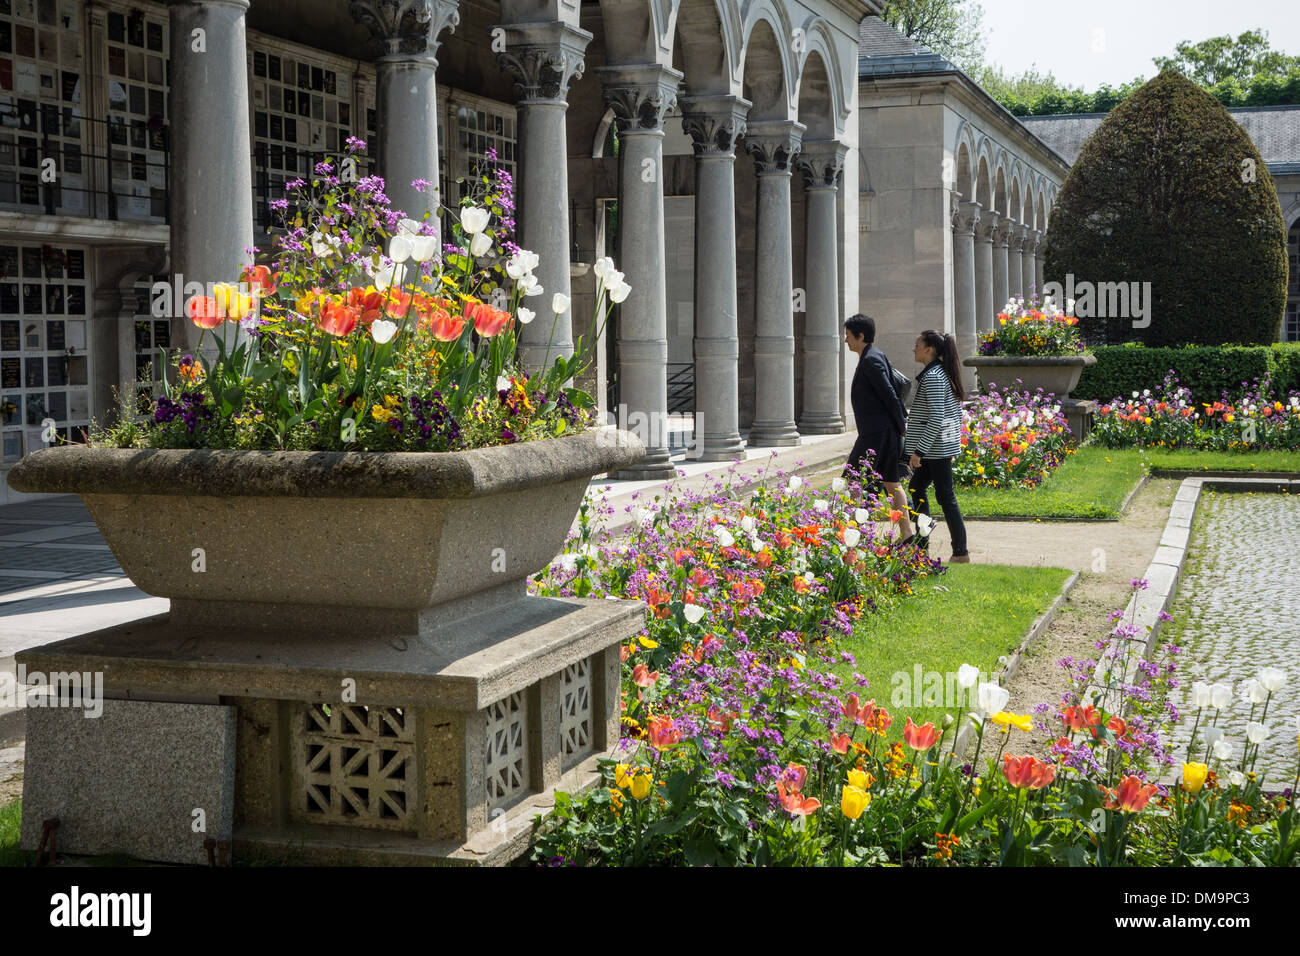 GARDEN OF REMEMBRANCE WITH URNS ALIGNED IN FRONT OF THE CREMATORIUM, PERE-LACHAISE CEMETERY, PARIS 20TH ARRONDISSEMENT, FRANCE - Stock Image